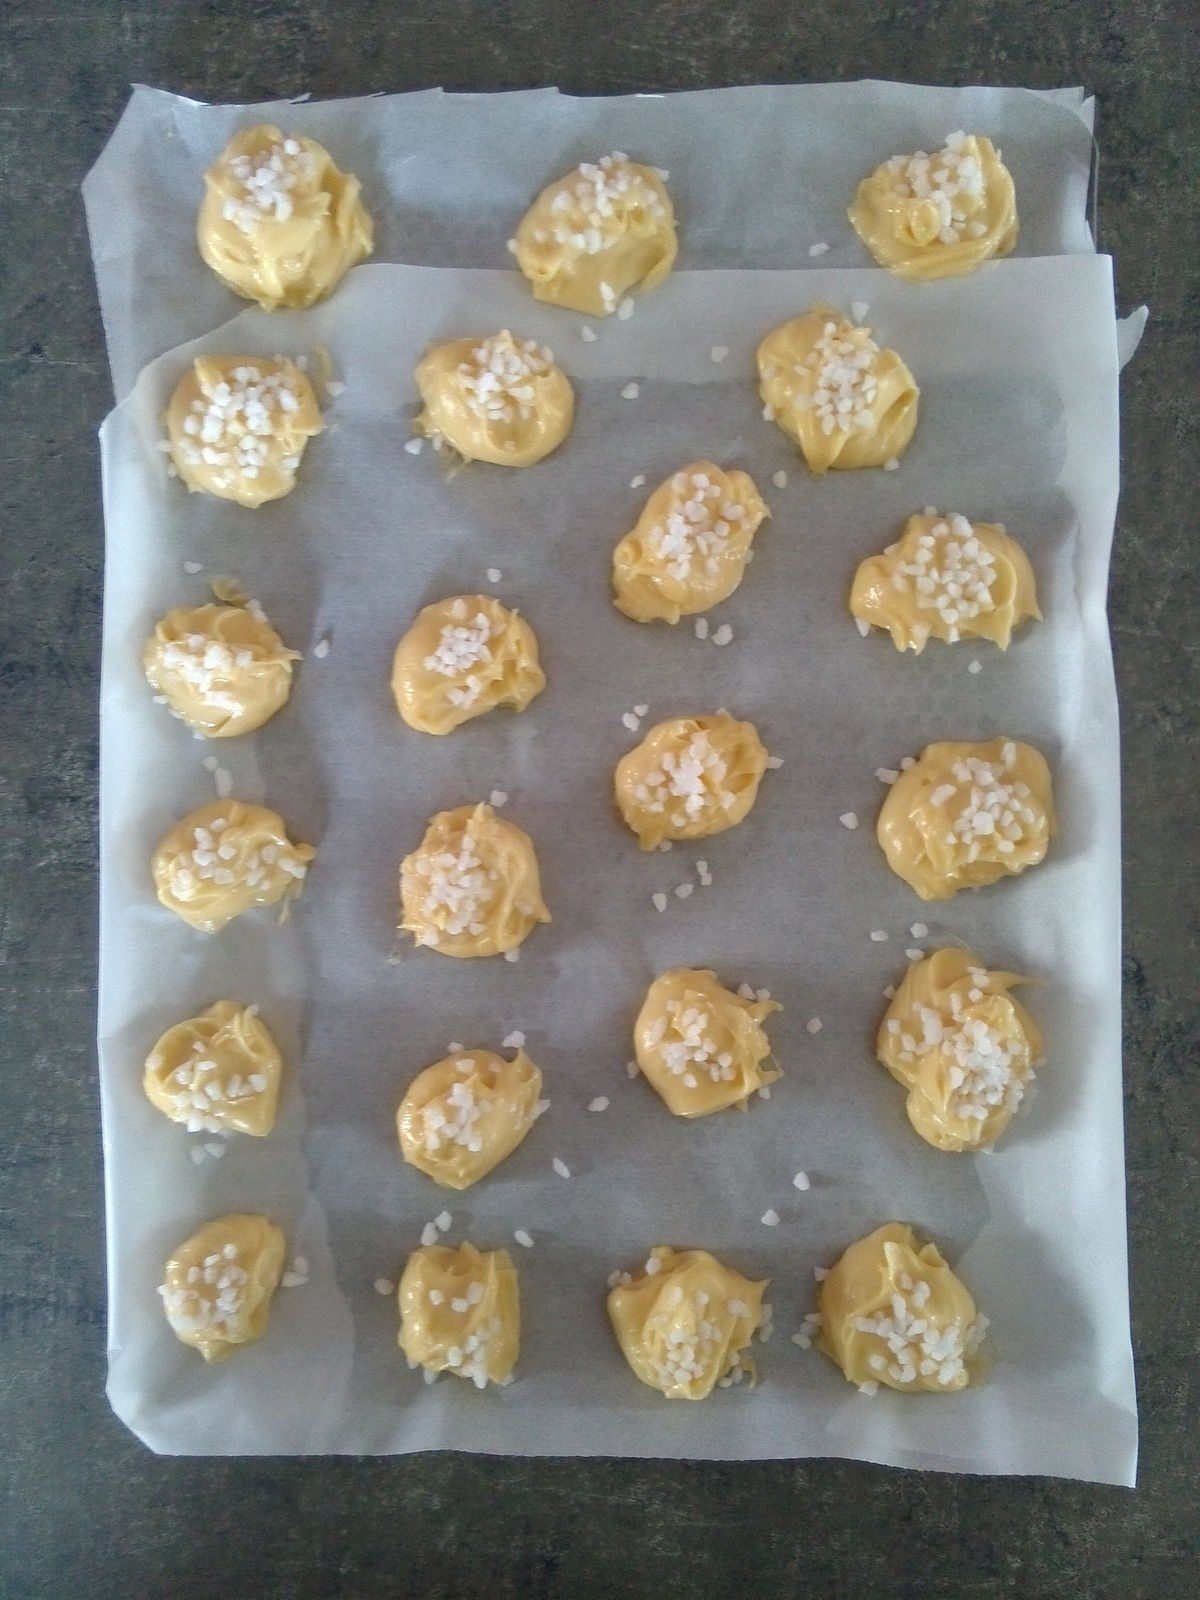 Chouquettes au thermomix.